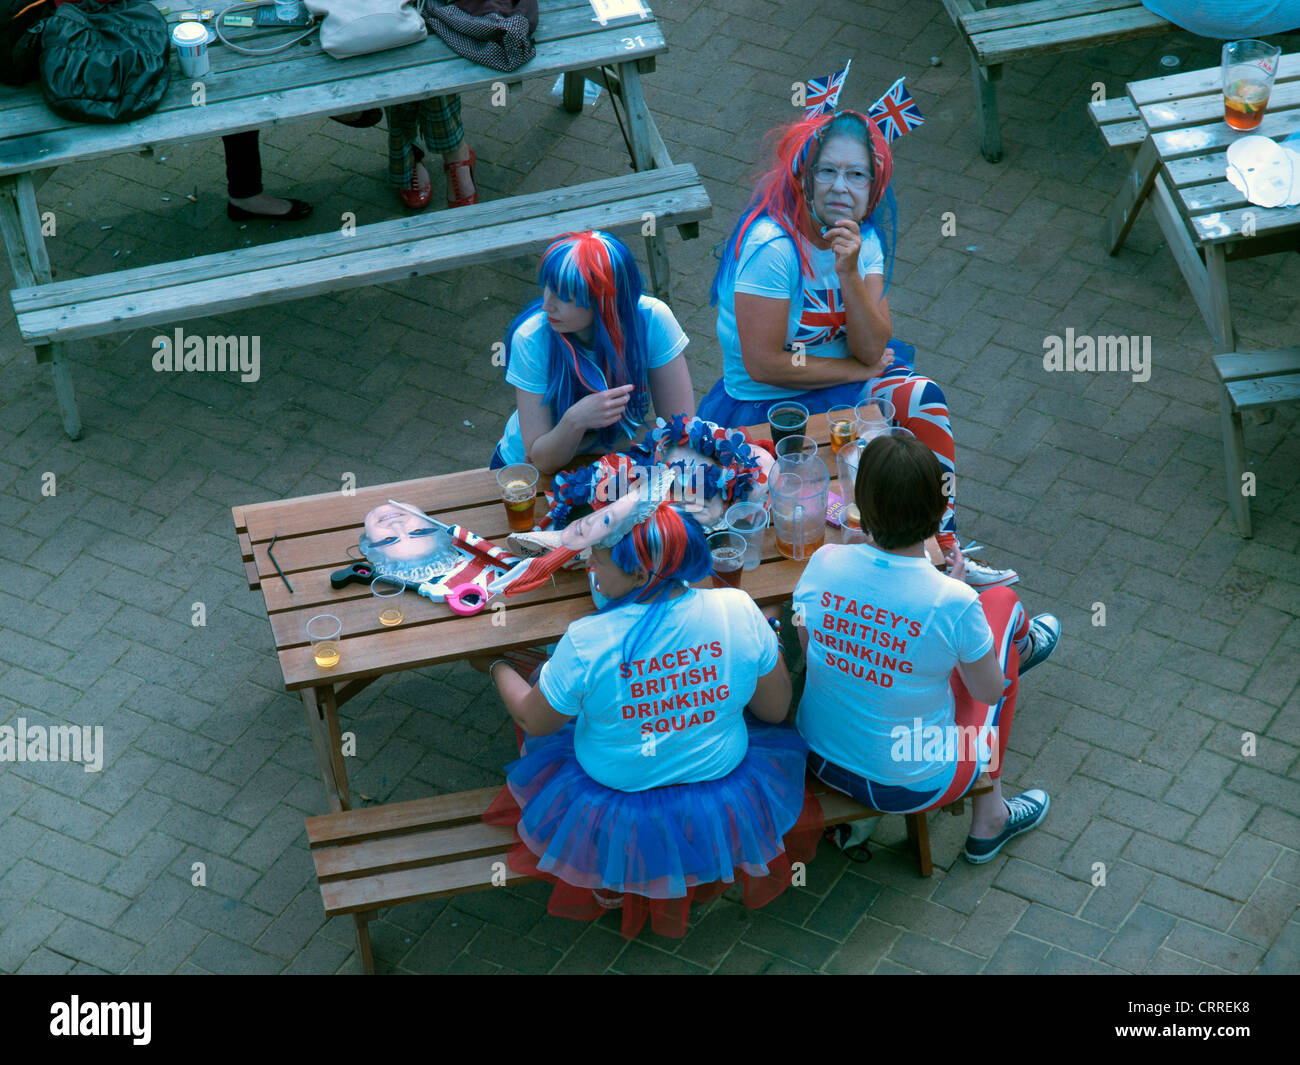 British Hen Party Stock Photos & British Hen Party Stock Images - Alamy